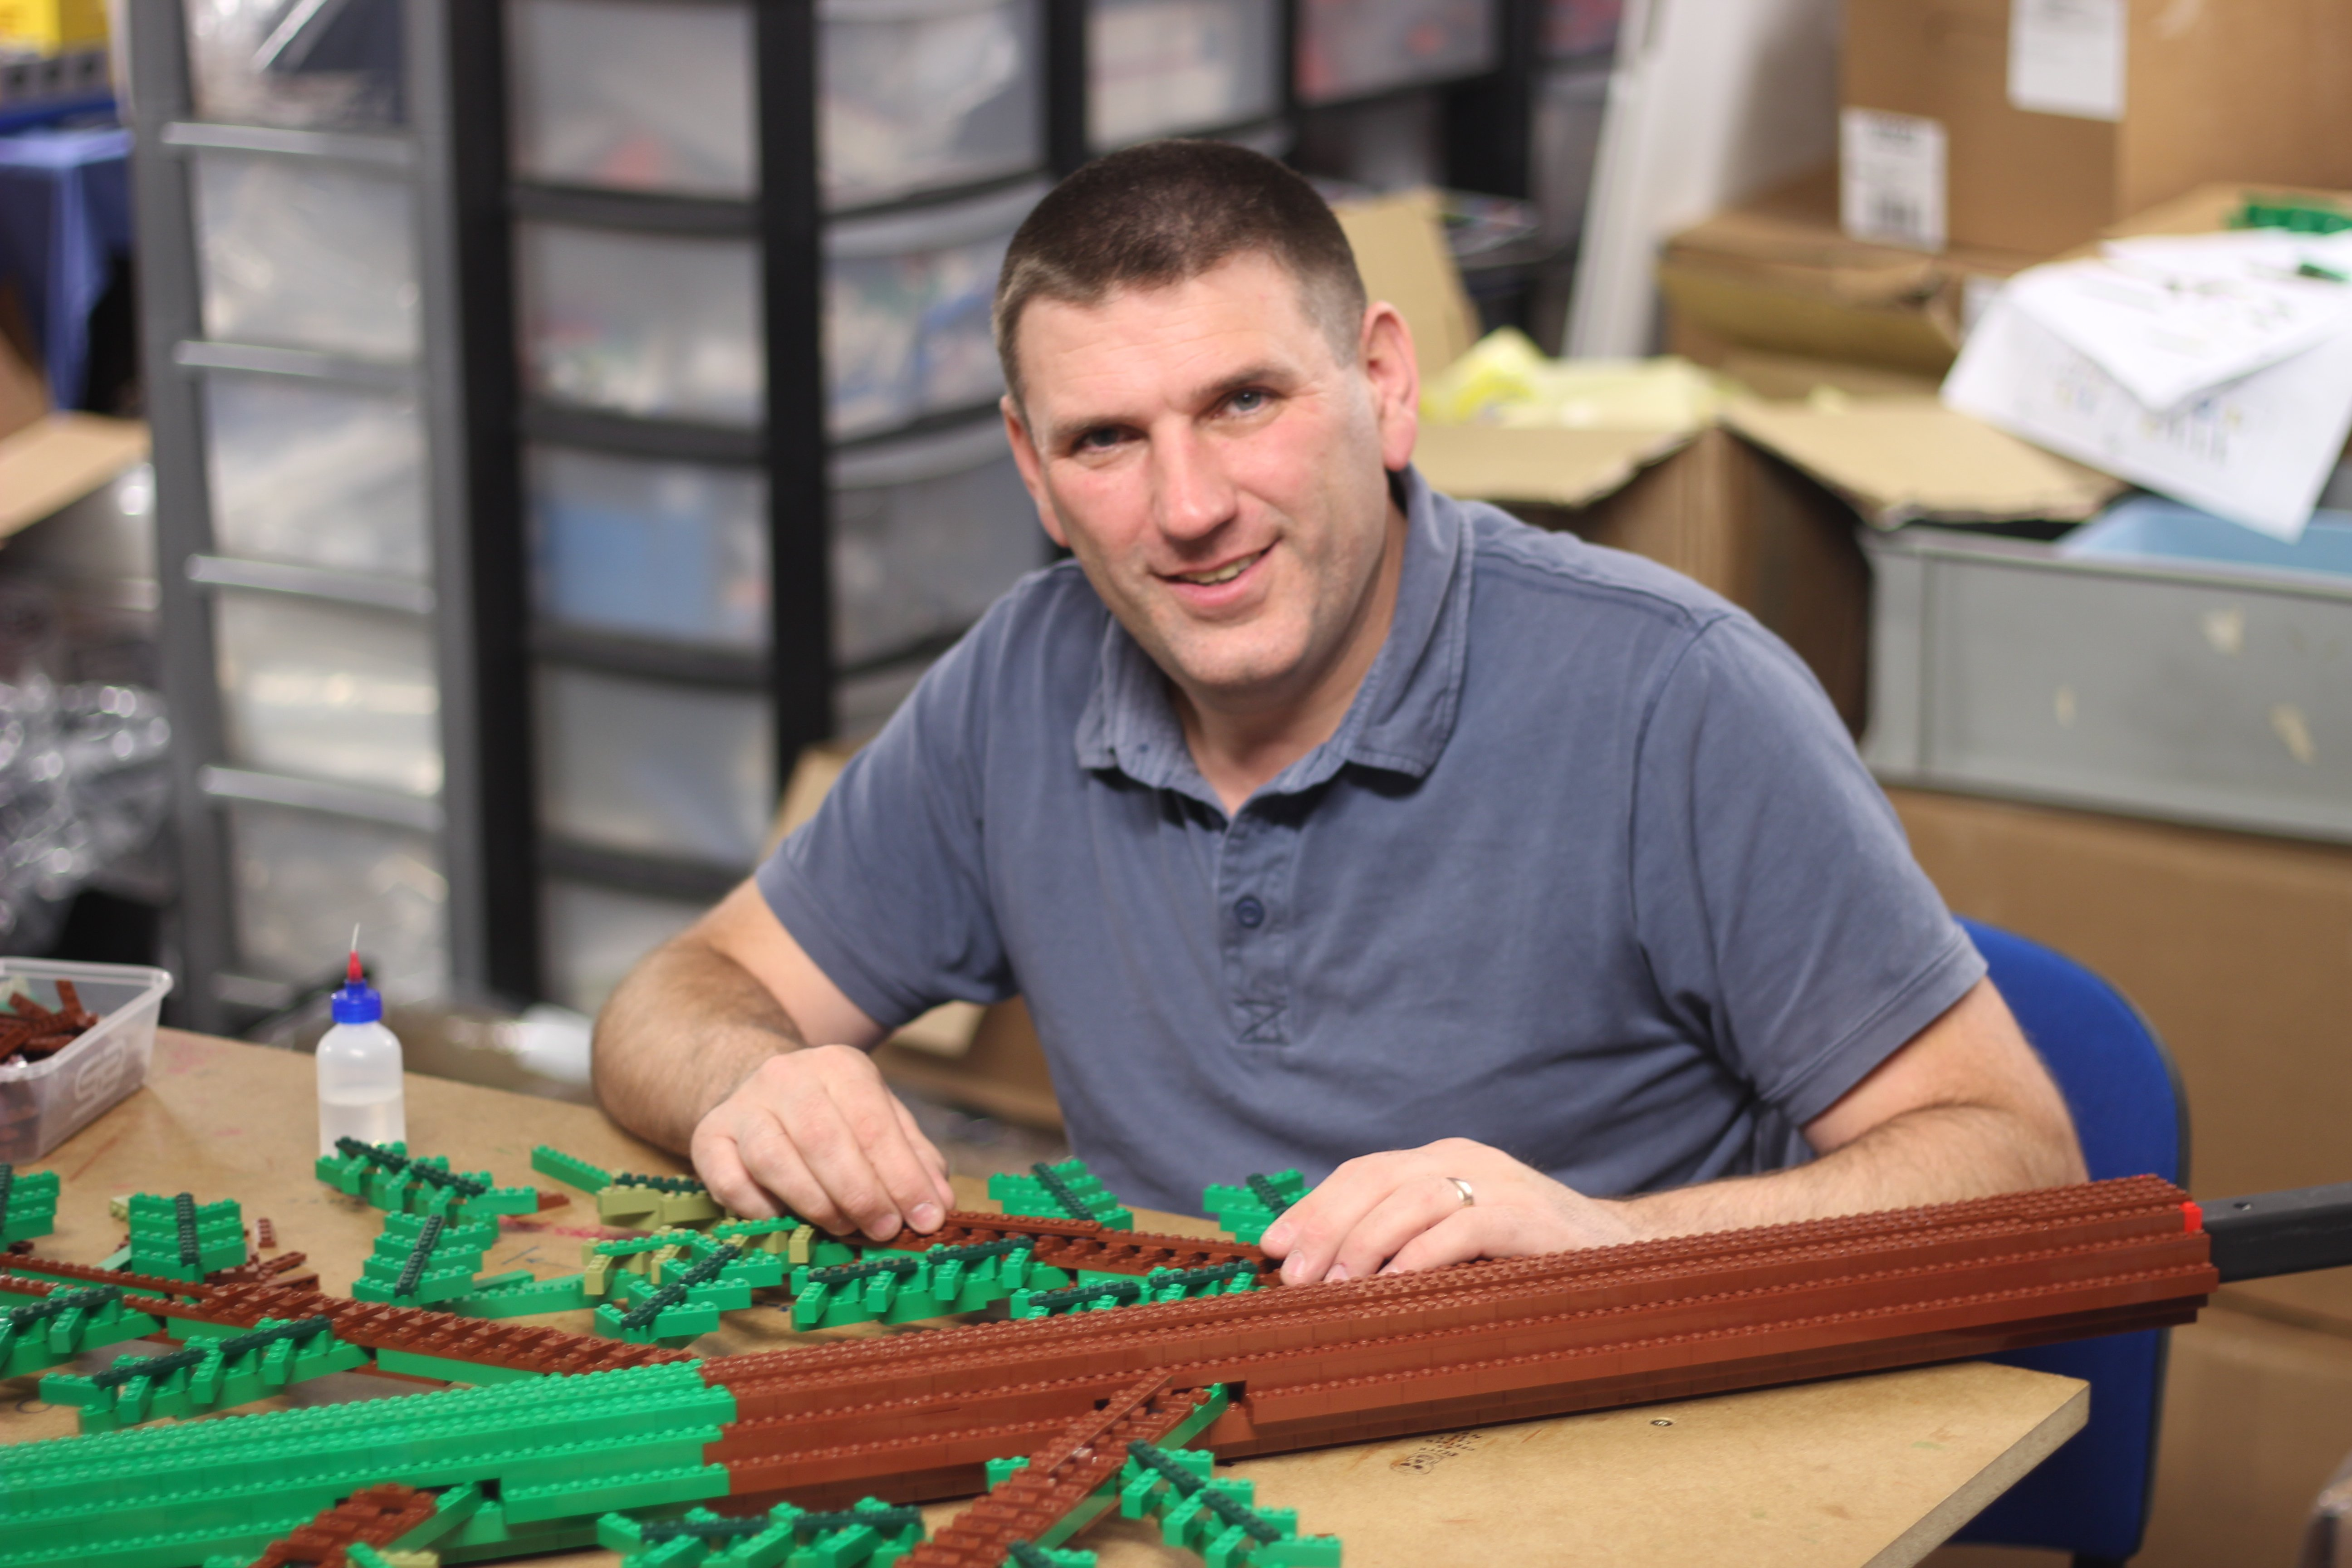 UK's only Lego Certified Professional Duncan Titmarsh